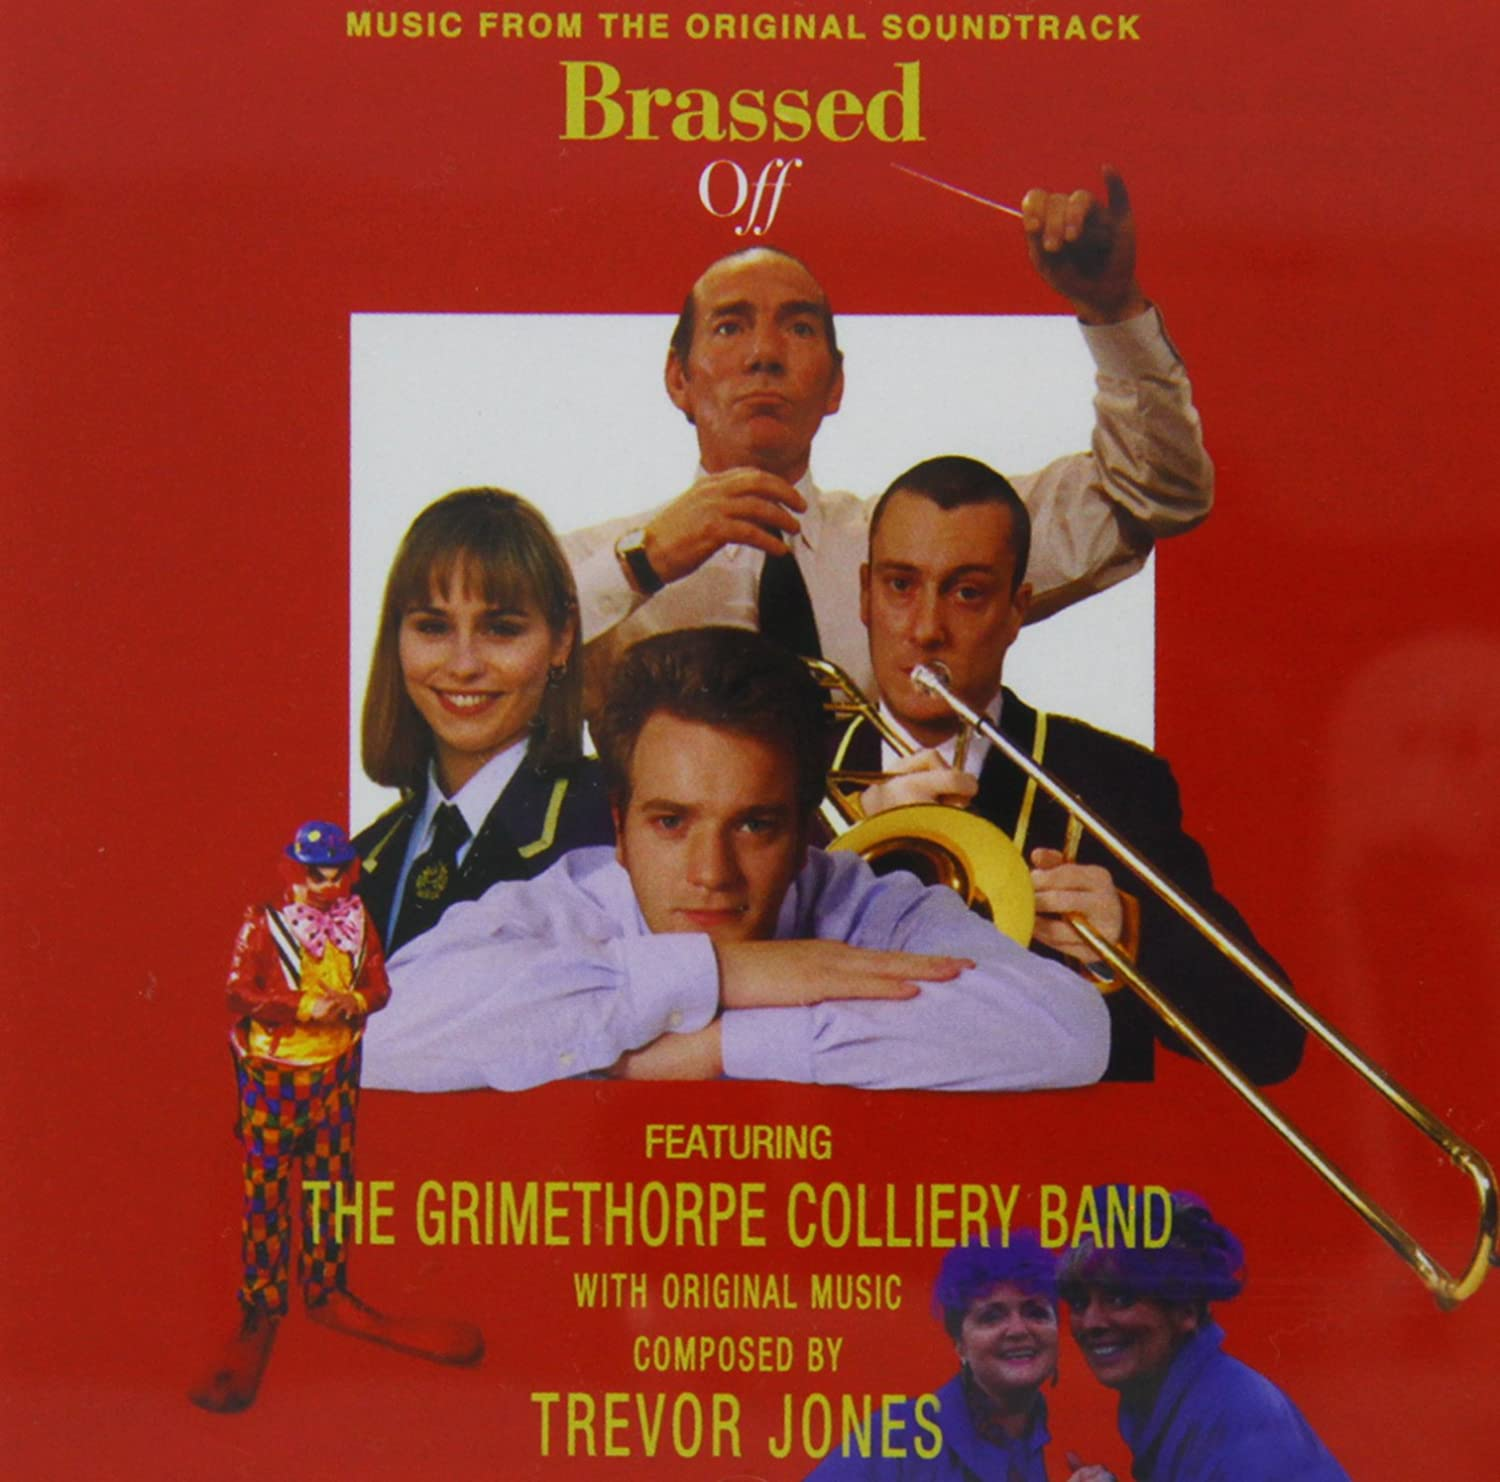 brassed off Grimerthorpe colliery band brassed off - en aranjuez con tu amor by dertodesengel24 4:07 play next play now brassed off we'll find the way by jl39347 3:30.